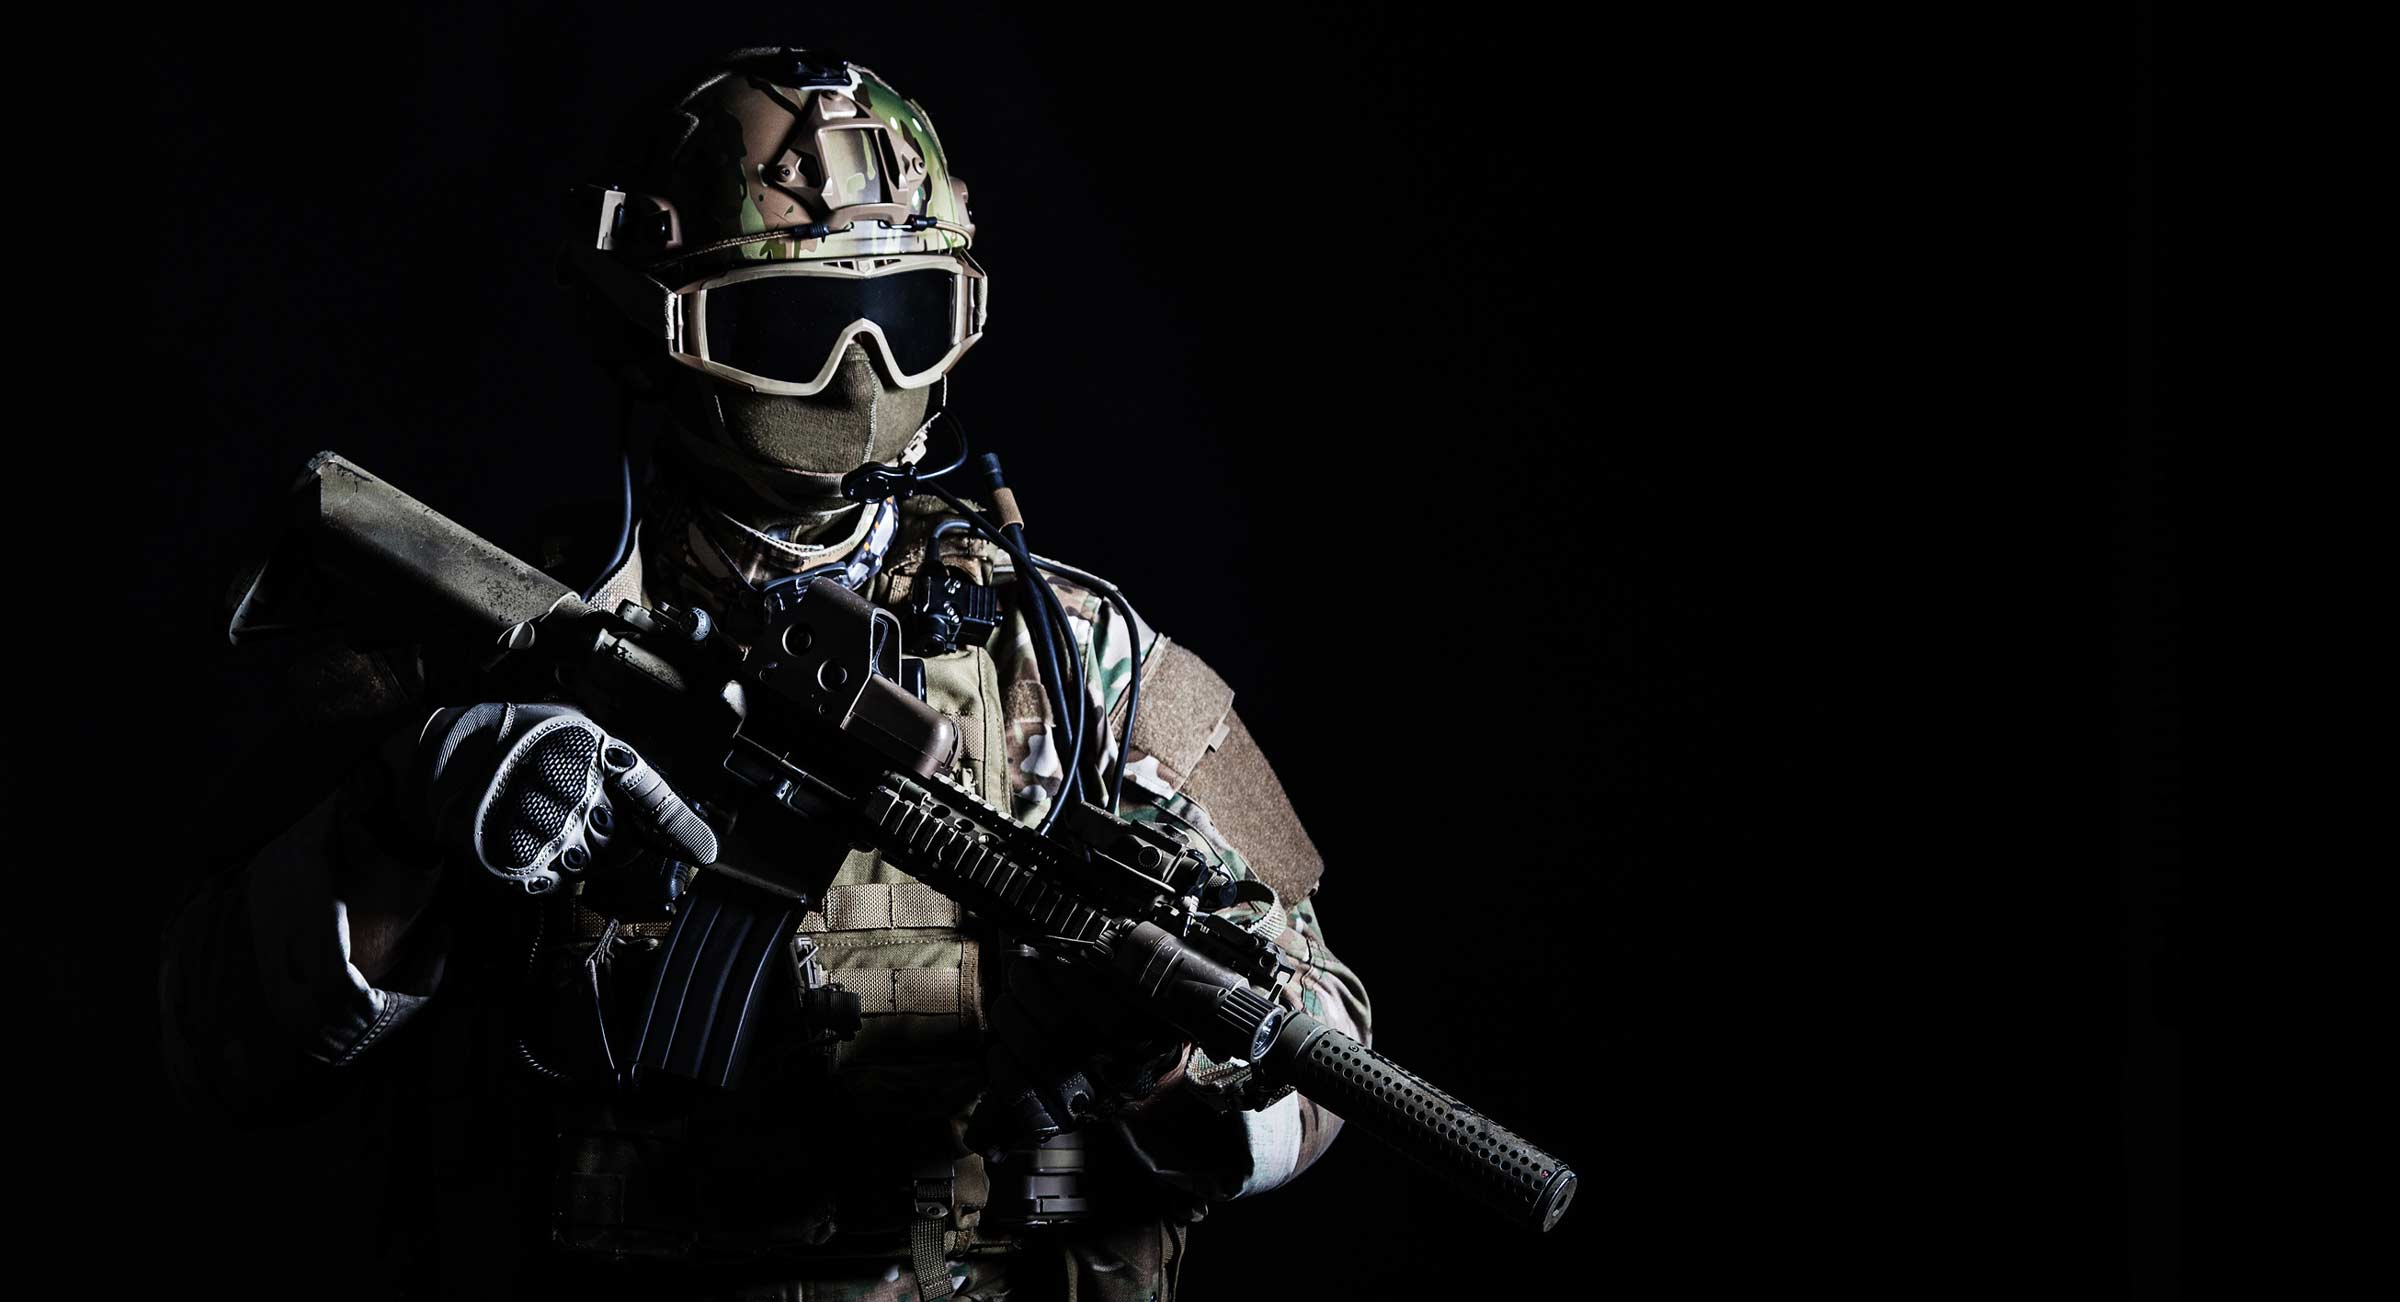 Special Forces Human Factors